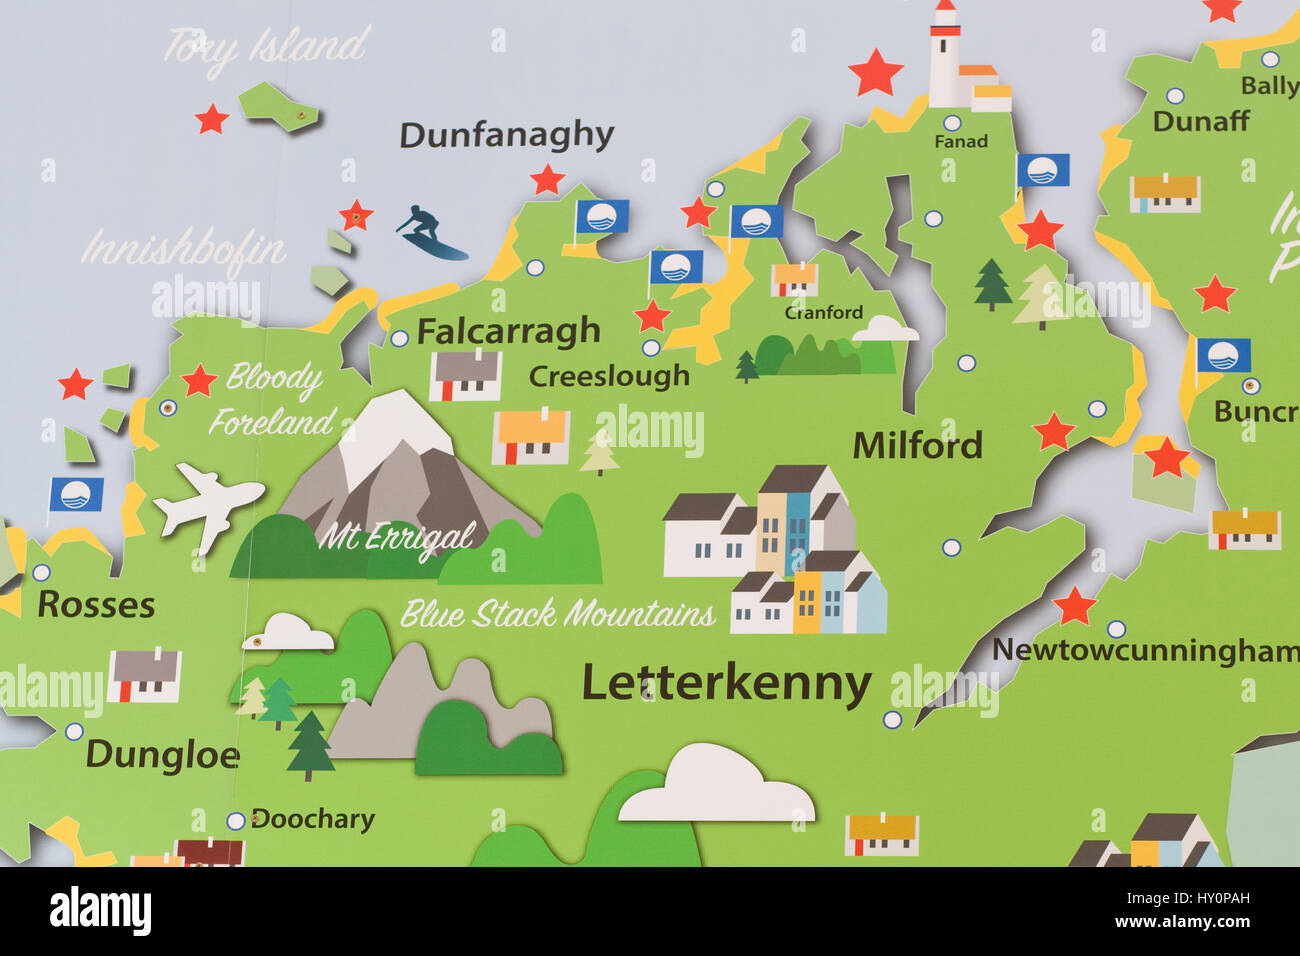 Map of County Donegal Ireland - Stock Image